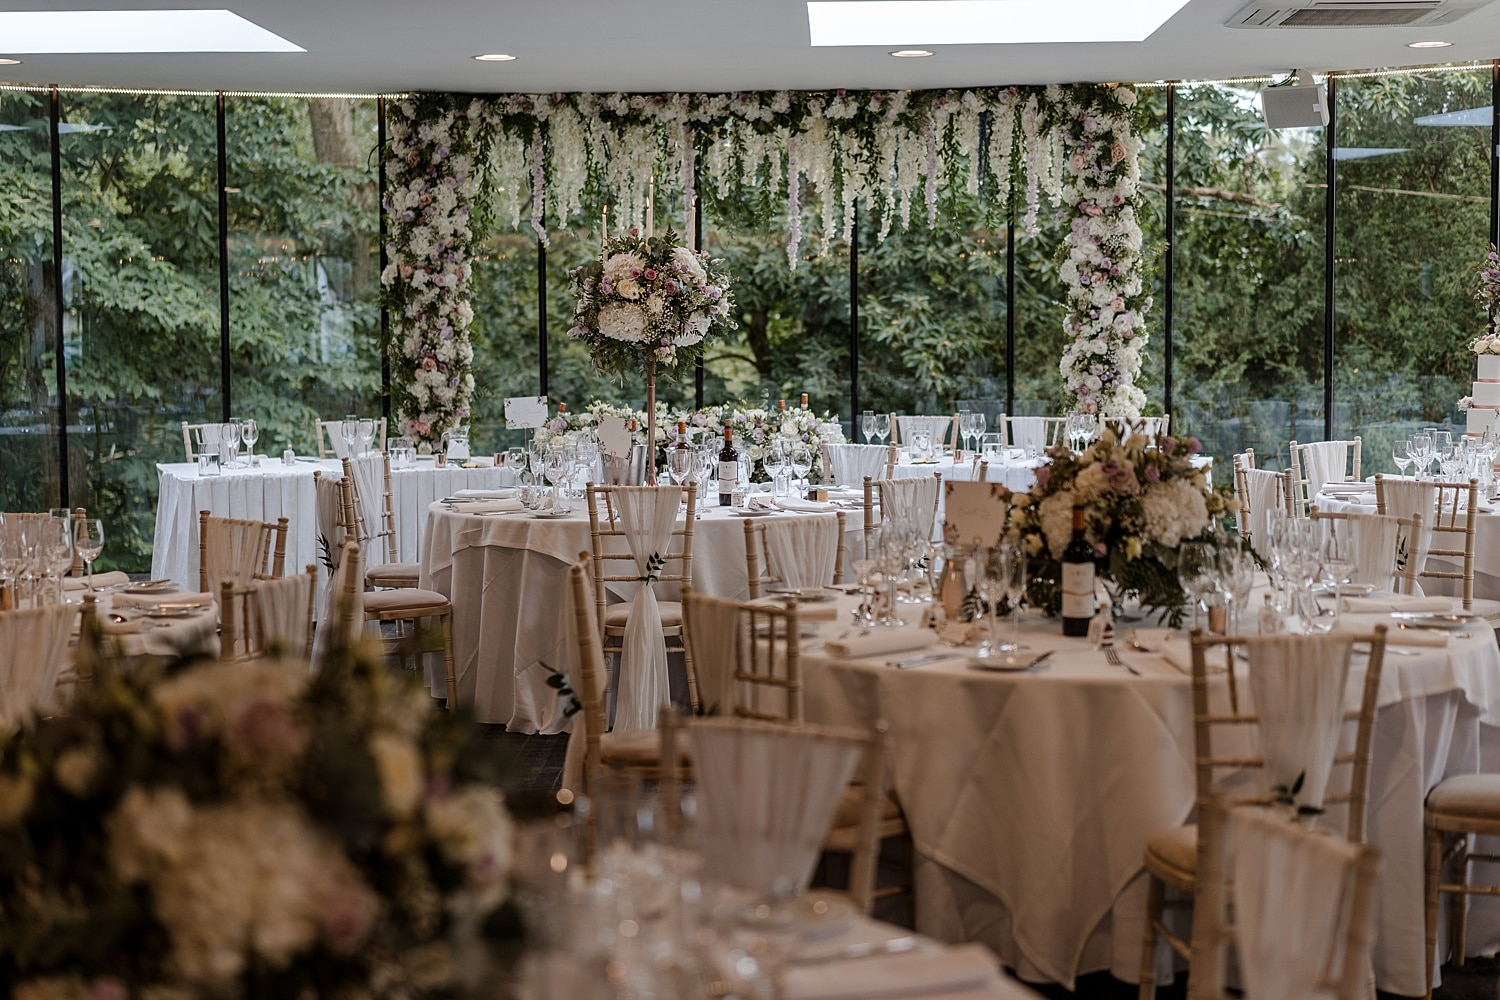 Wedding breakfast room decorations at Fairyhill, South Wales